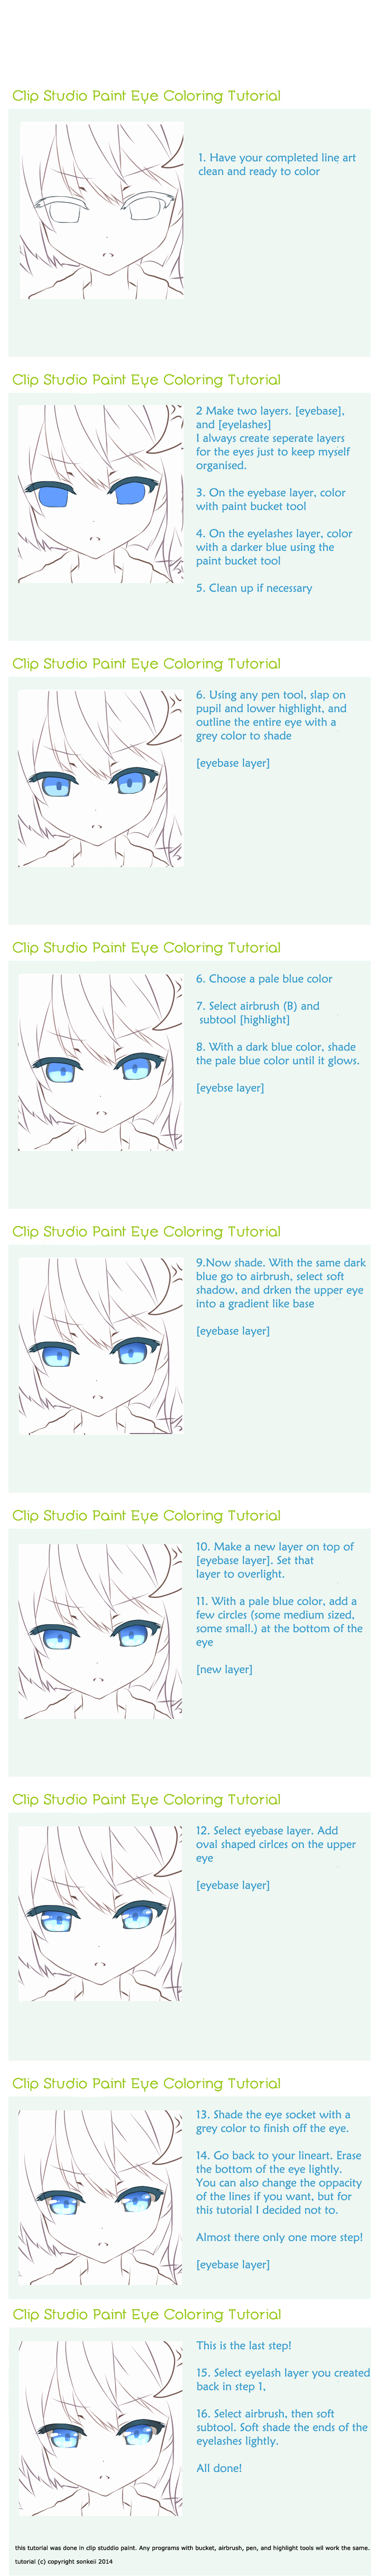 Clip Studio Paint Eye Tutorial By Sonkeii On Deviantart